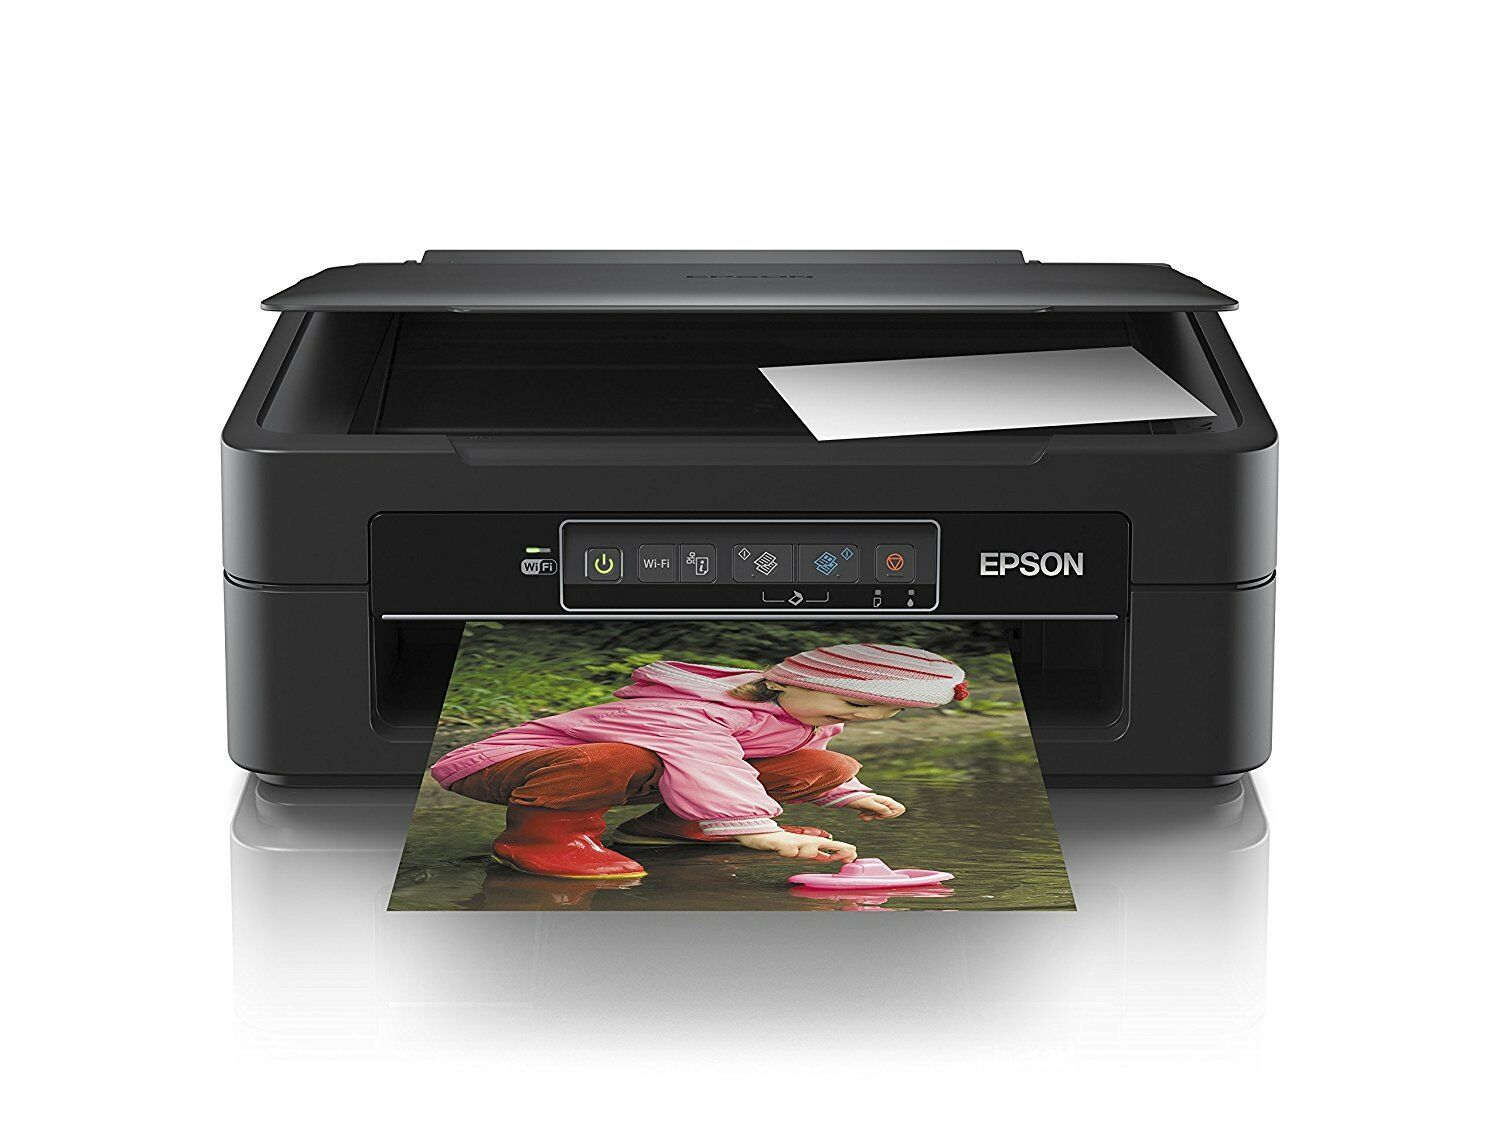 epson xp 245 wireless all in one printer with ink a4 scanner wi fi inkjet wifi ebay. Black Bedroom Furniture Sets. Home Design Ideas